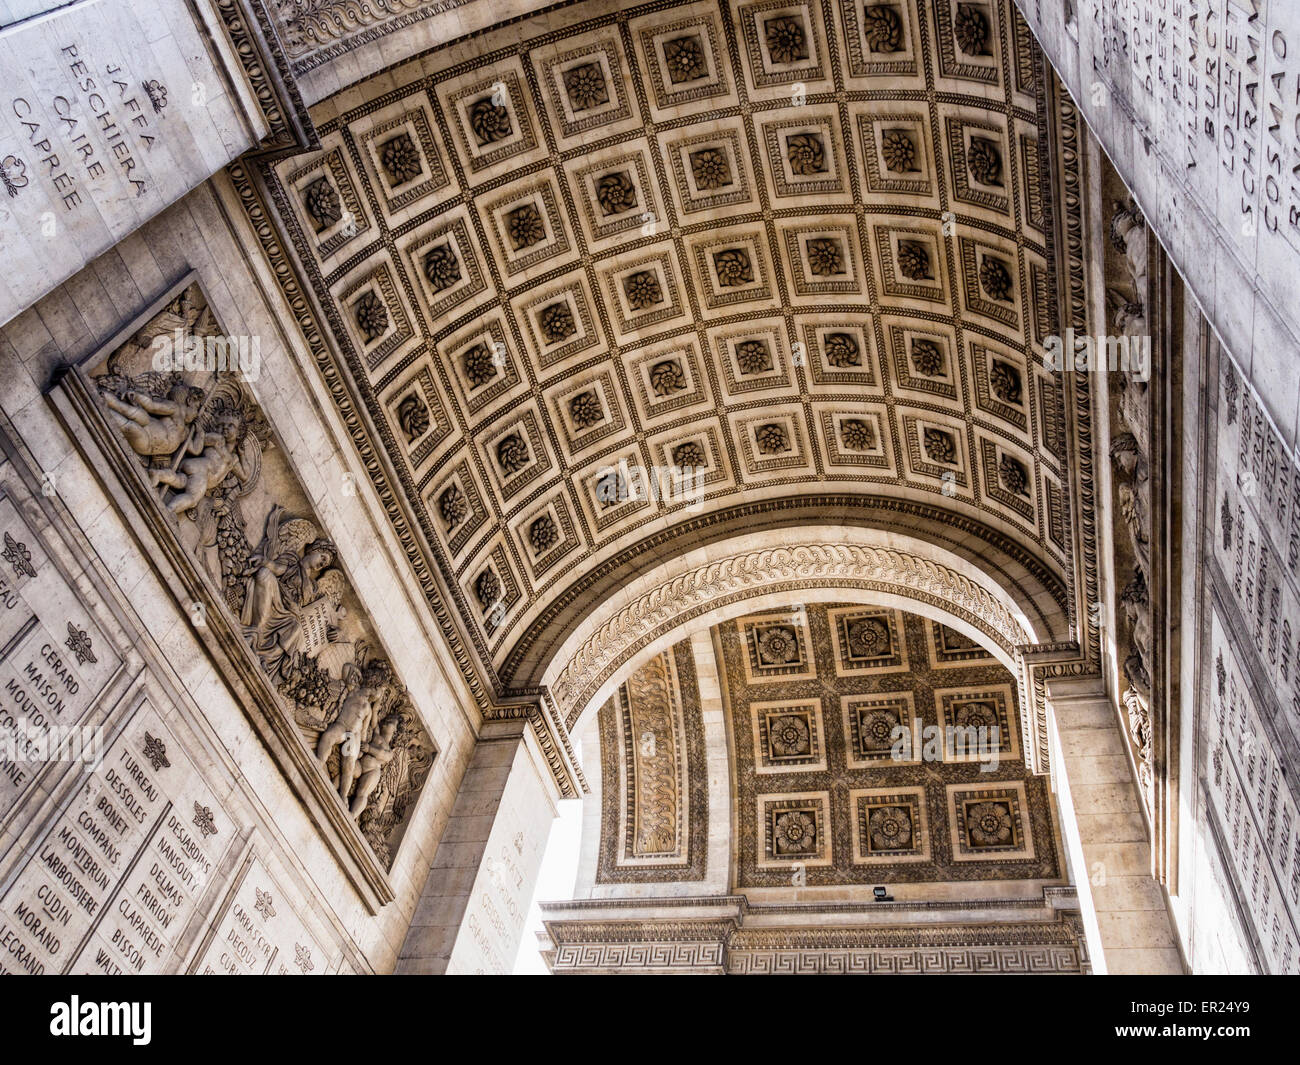 Champs Elysees, Paris, Arc de Triomphe historic monument roof detail - grand, neoclassical triumphal arch honouring - Stock Image